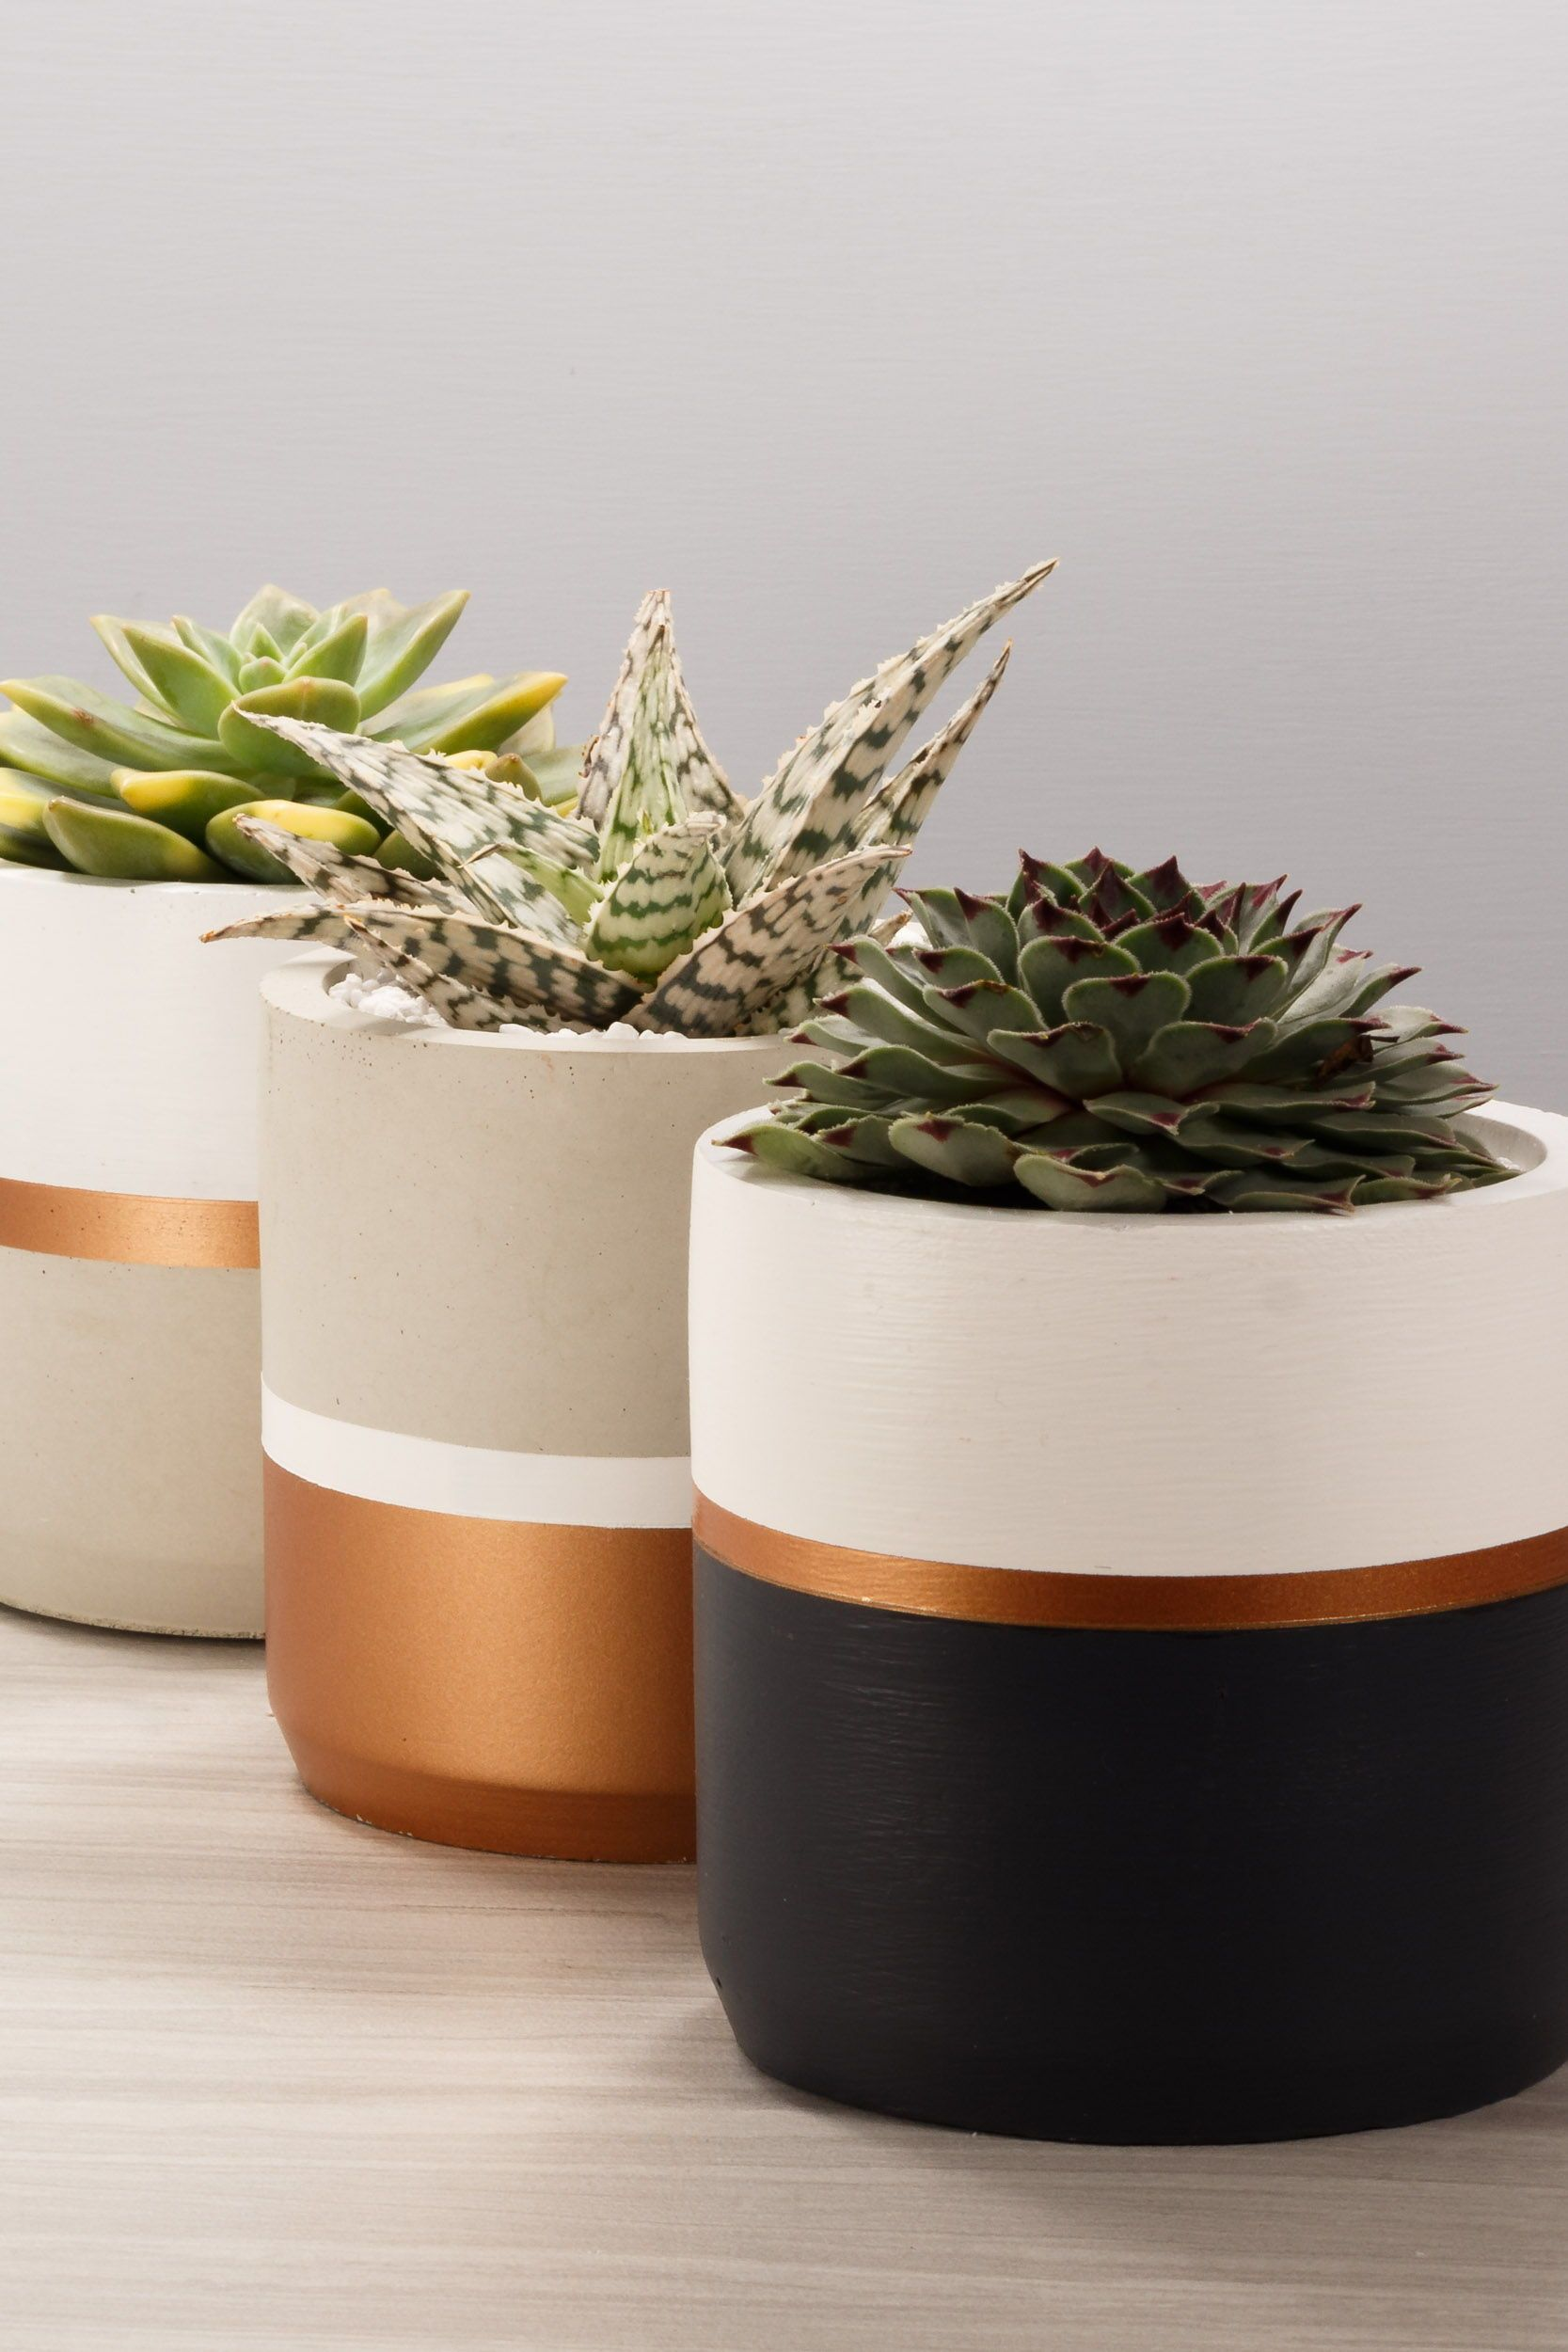 Fleurs En Pot Resistant Au Gel bronze _ concrete succulent planter _ 2 sizes, 3 colorways _